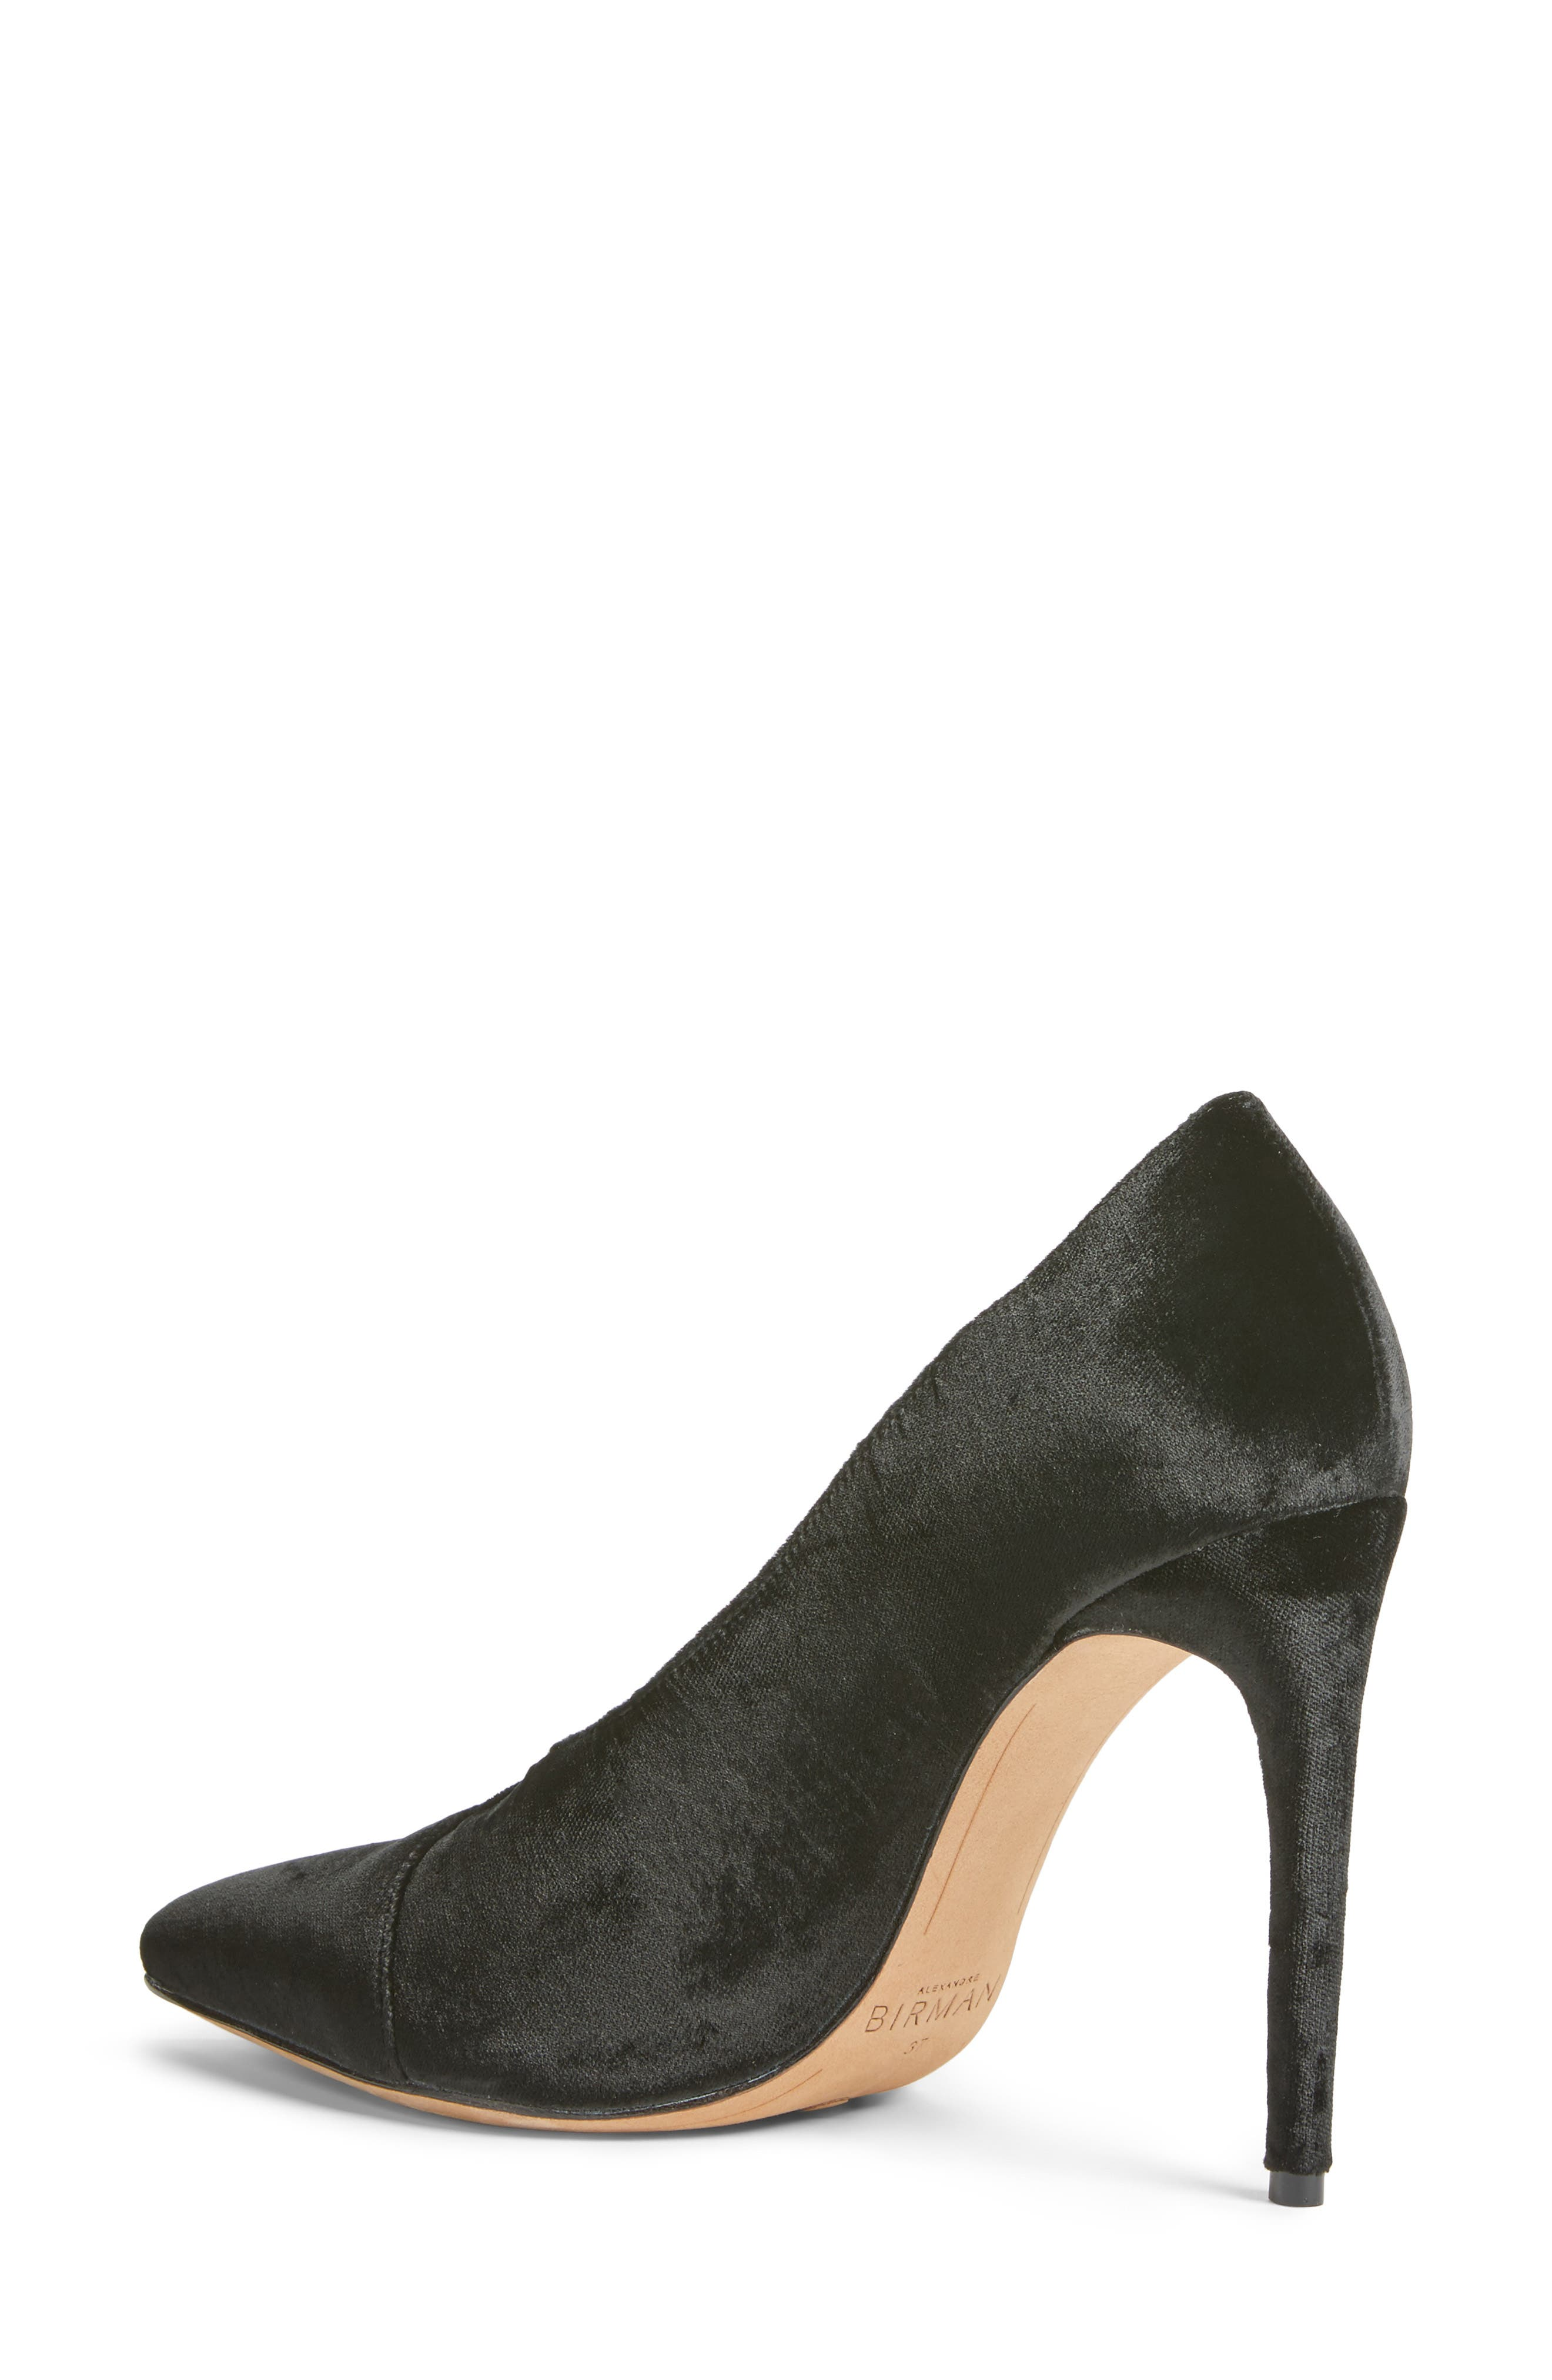 Clarice Pointy Toe Pump,                             Alternate thumbnail 2, color,                             001